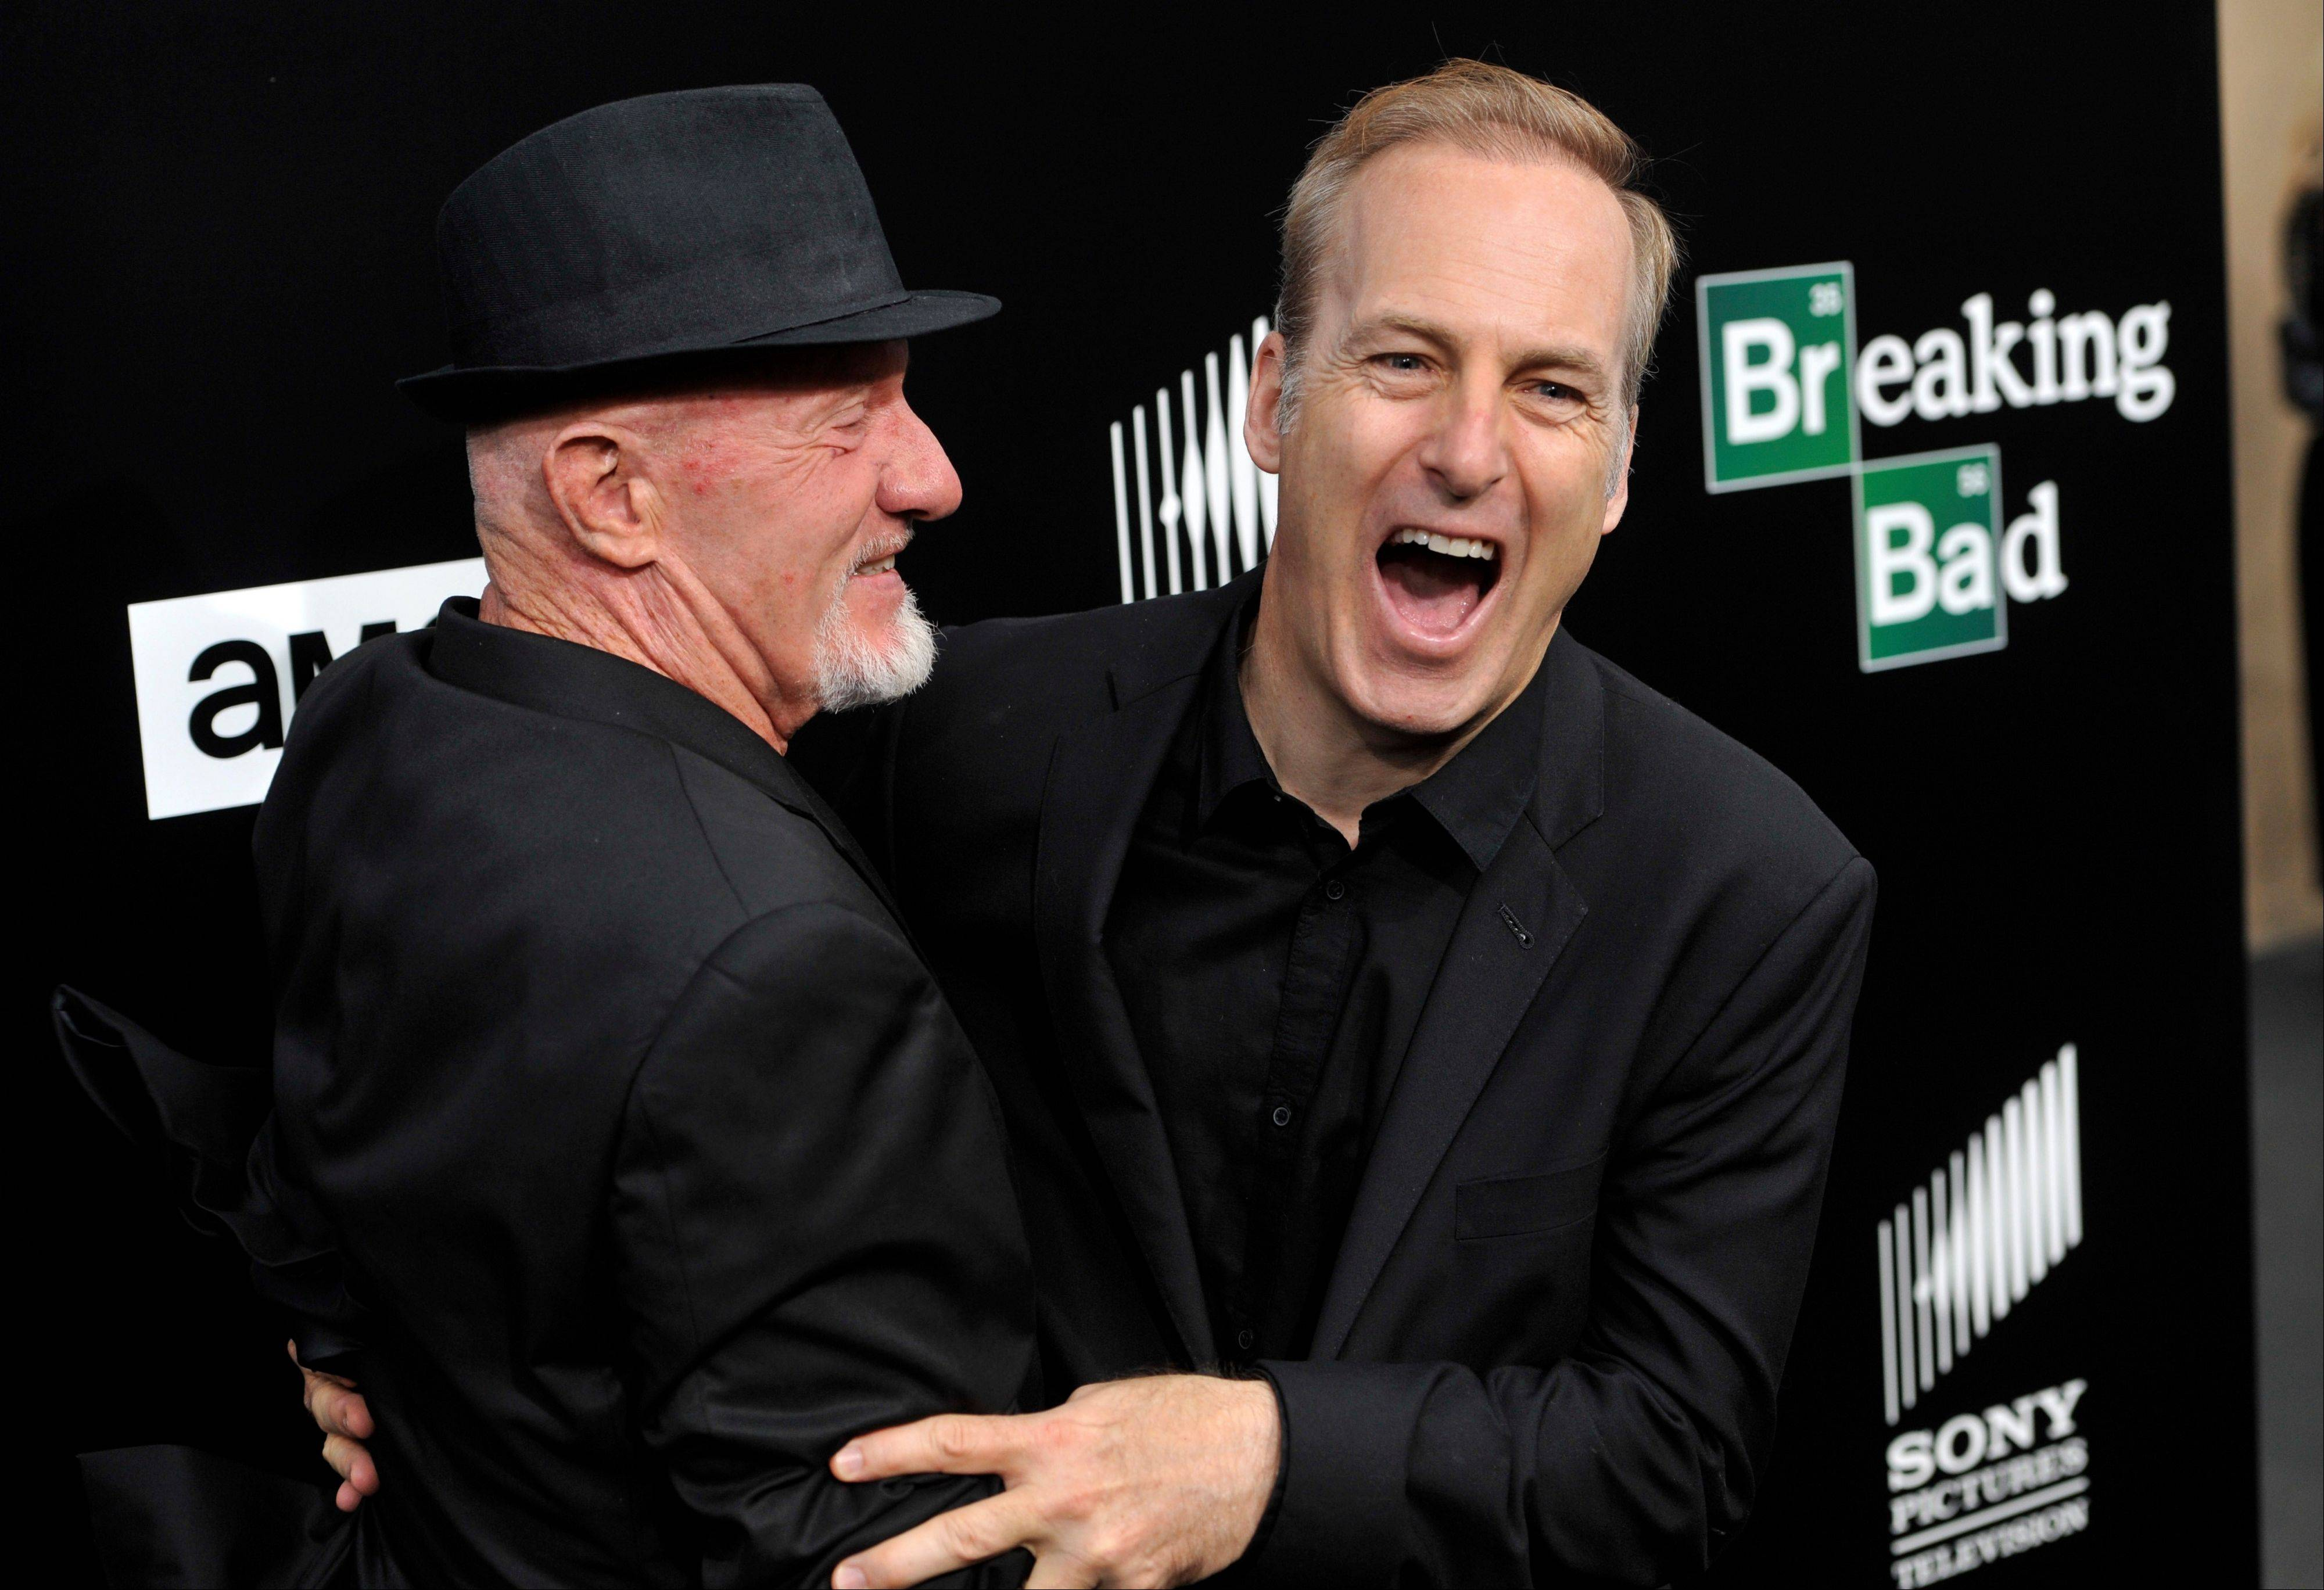 Former cast member Jonathan Banks, left, and current cast member Bob Odenkirk, from �Breaking Bad,� on the red carpet at a premiere screening to celebrate the final episodes in Los Angeles.